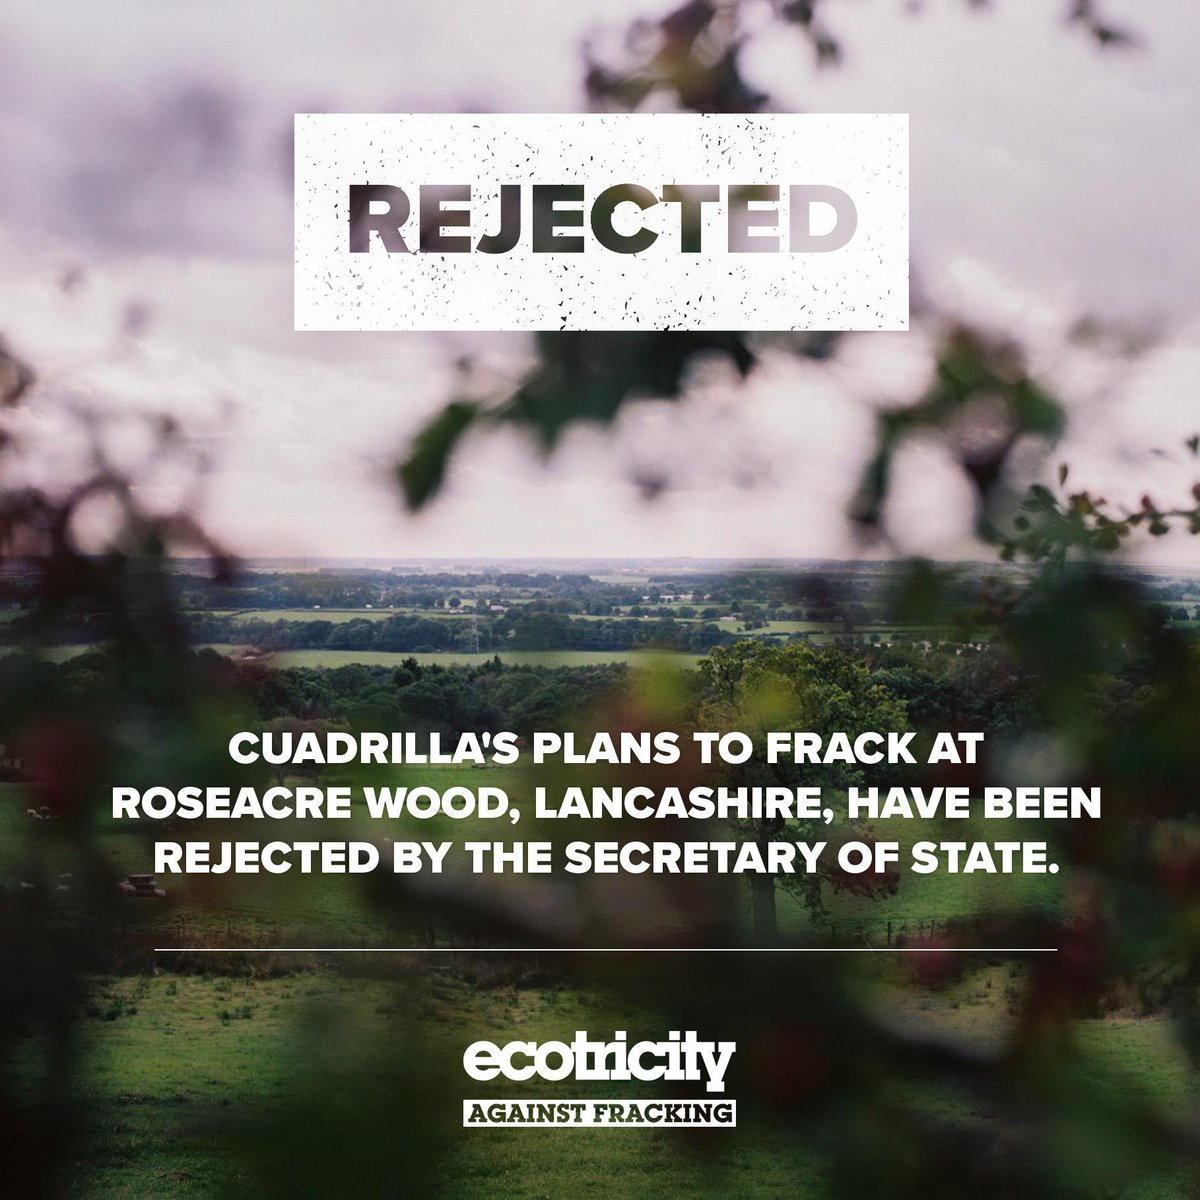 Good news! Cuadrilla's plans to frack at Roseacre Wood, Lancashire, have been rejected by the Secretary of State today.  This is fantastic, especially for local residents, campaigners and the planet. 💪🌍#frackoff